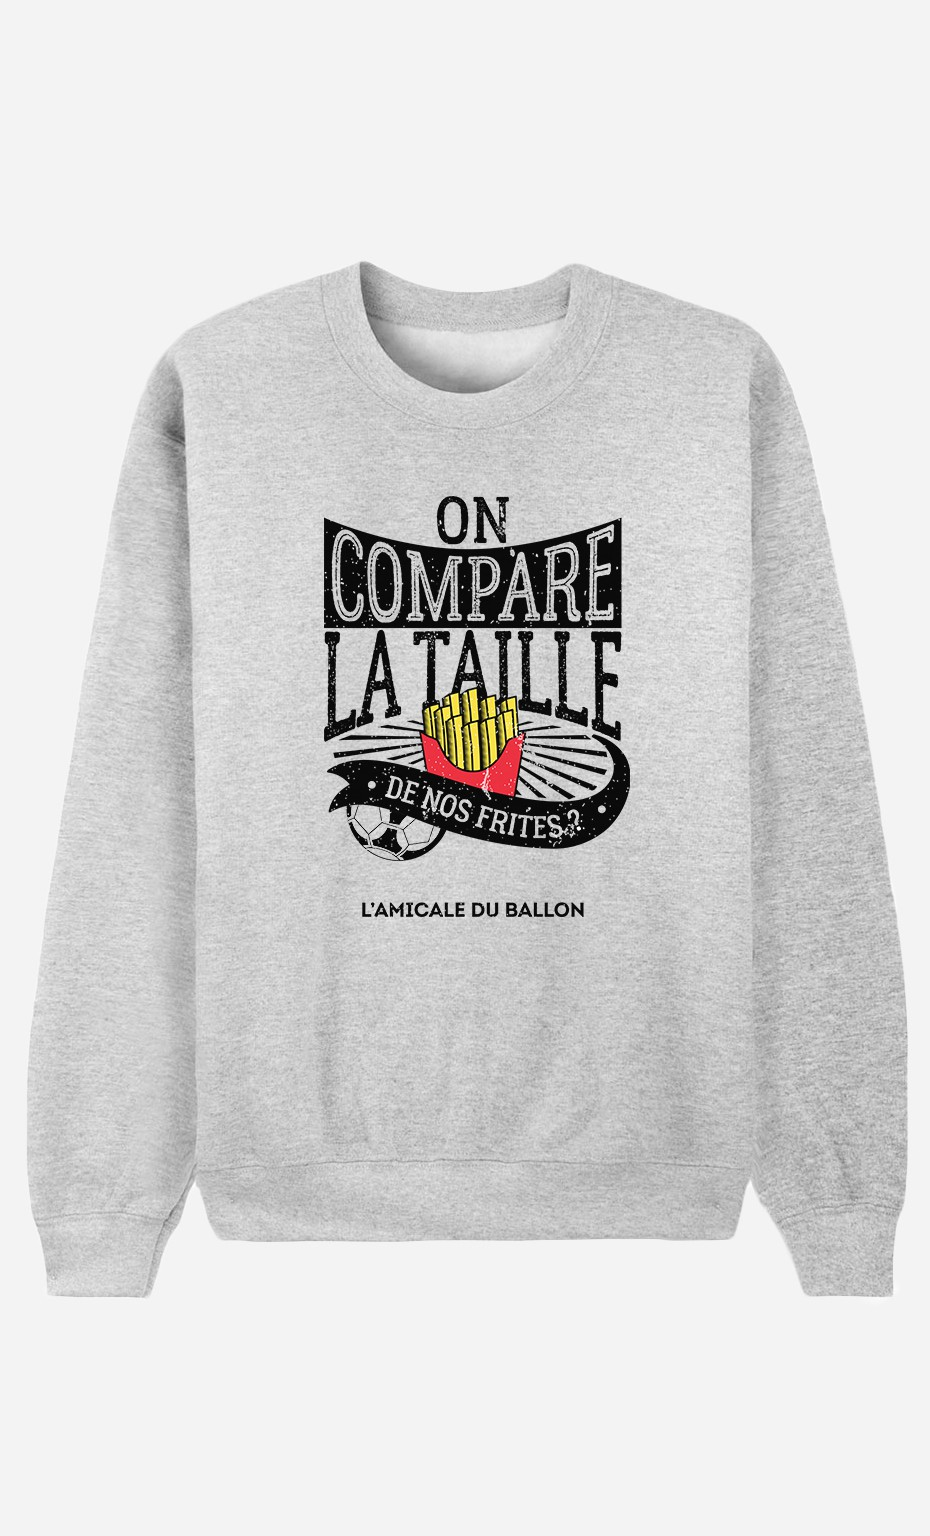 Sweat On Compare la Taille de Nos Frites